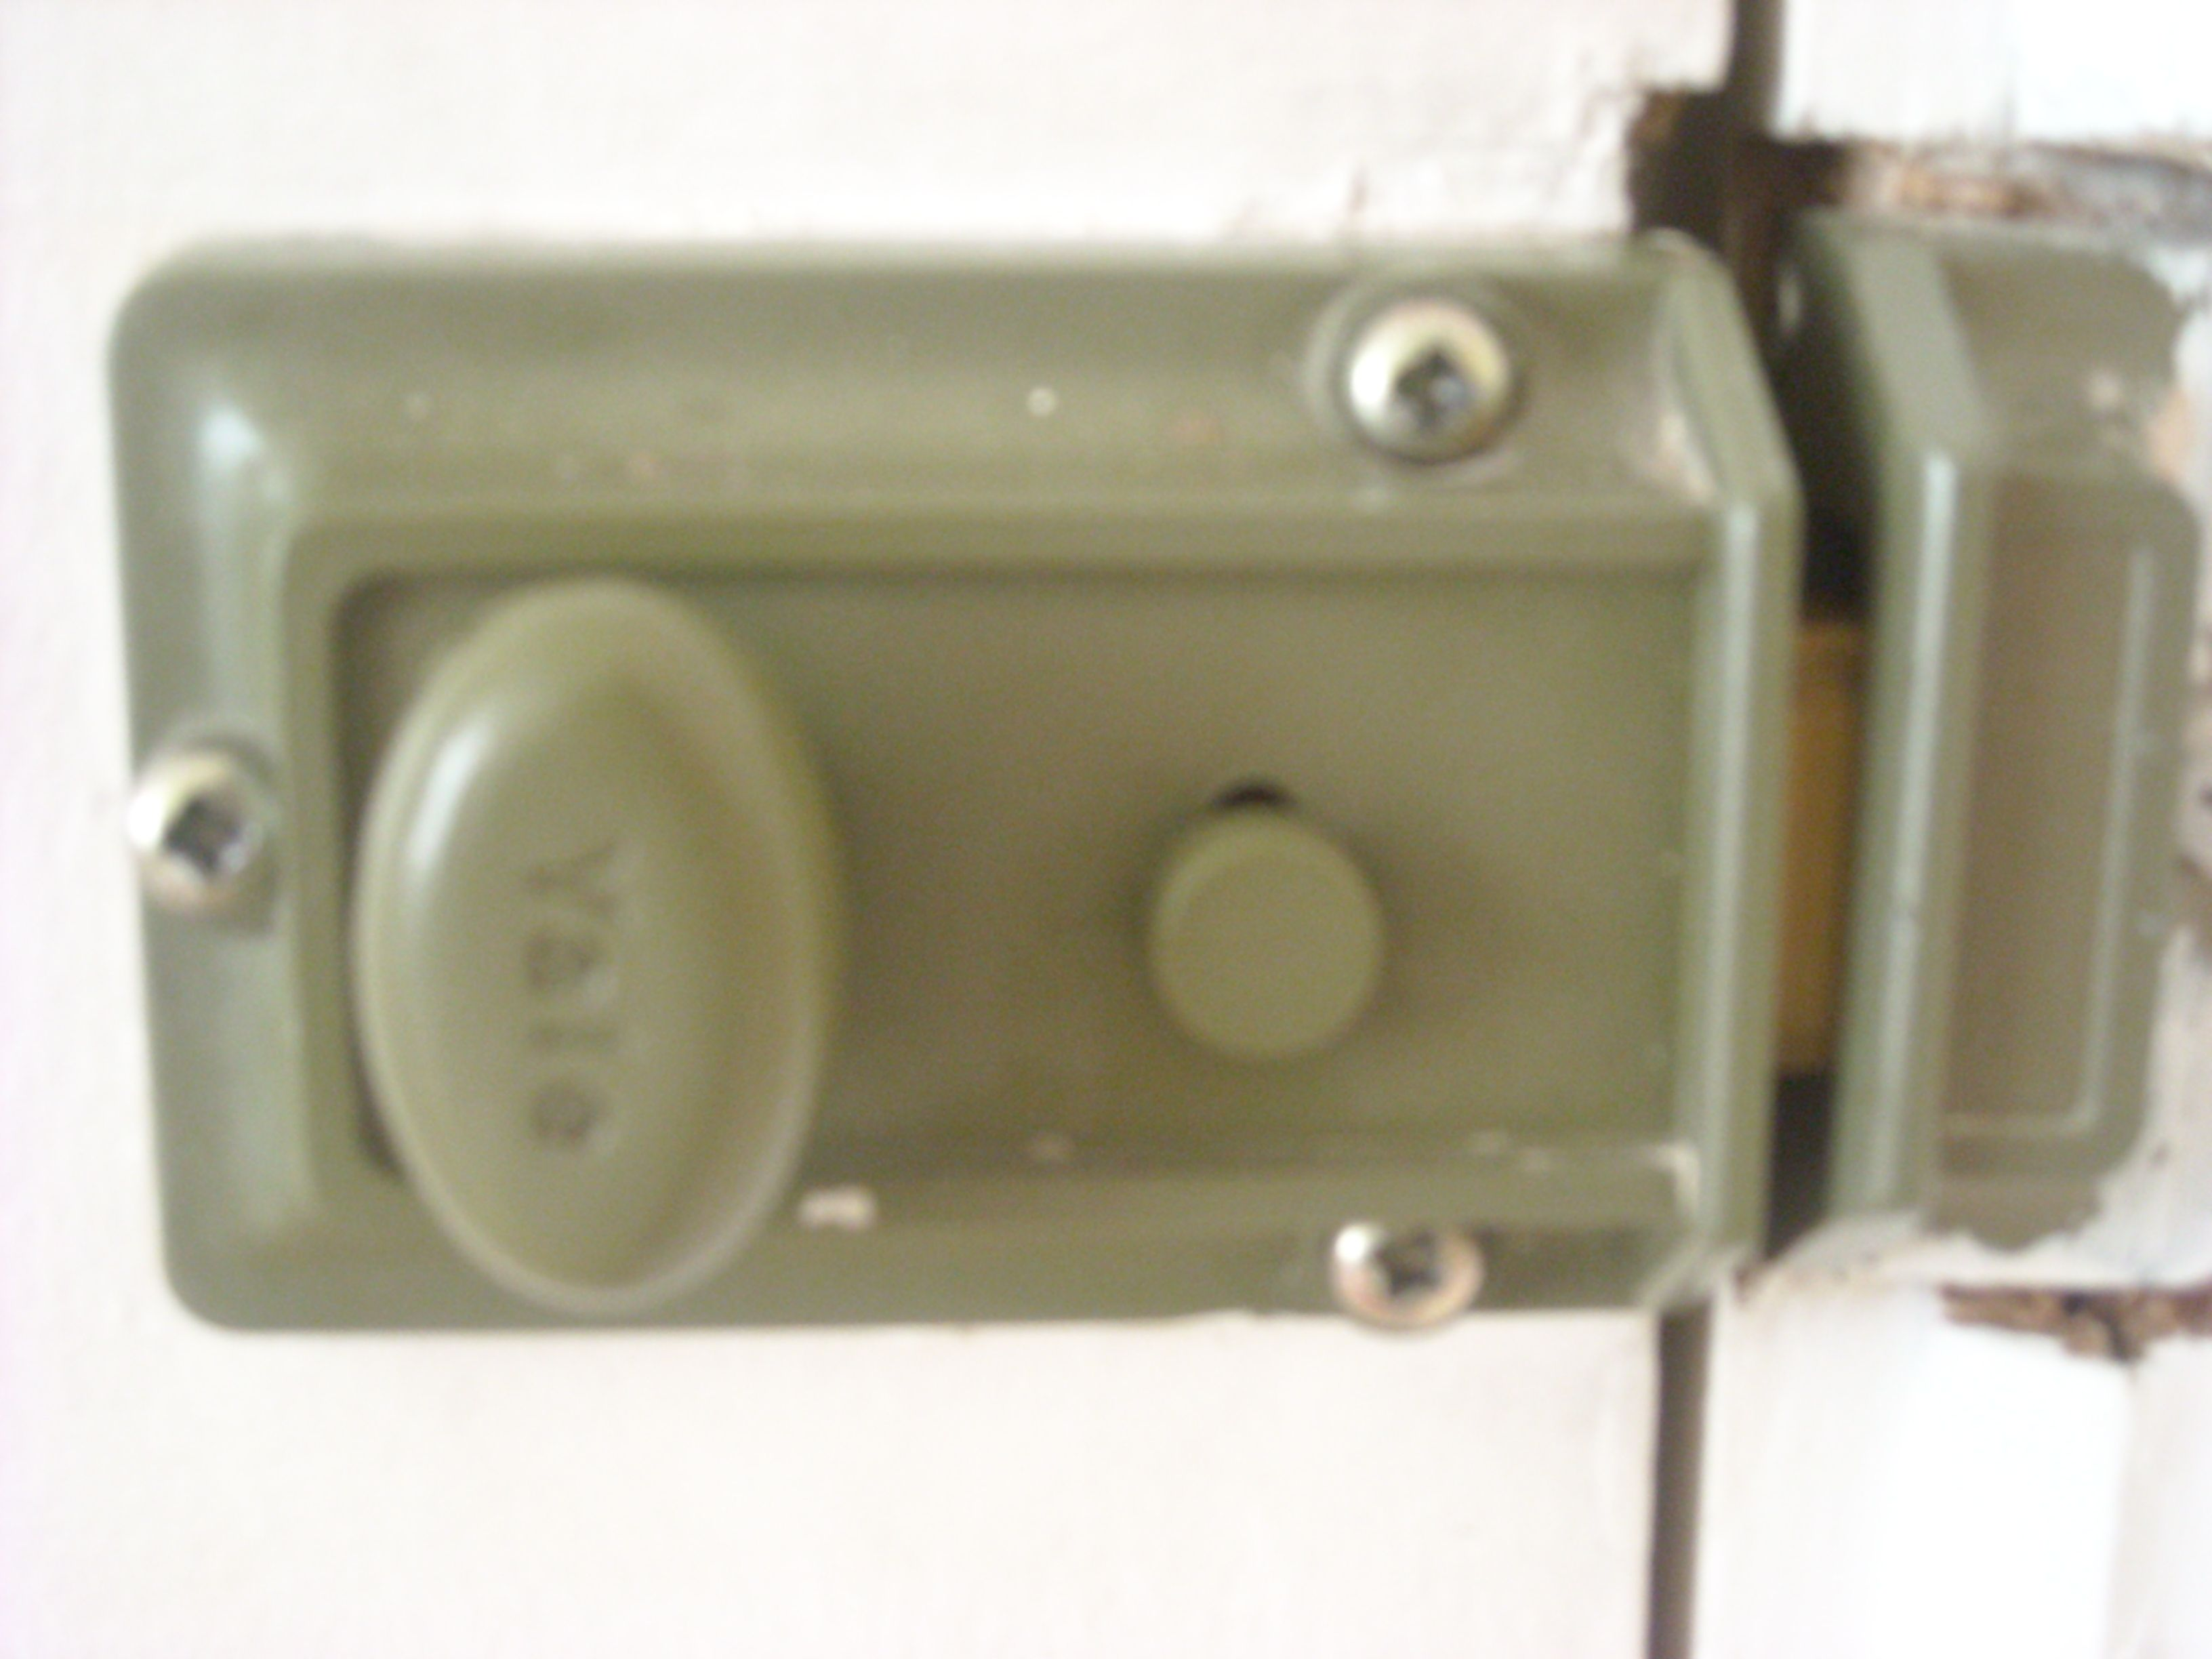 car of and glass locks lock for image interior handle handles sliding with door patio choice types ofor aluminum